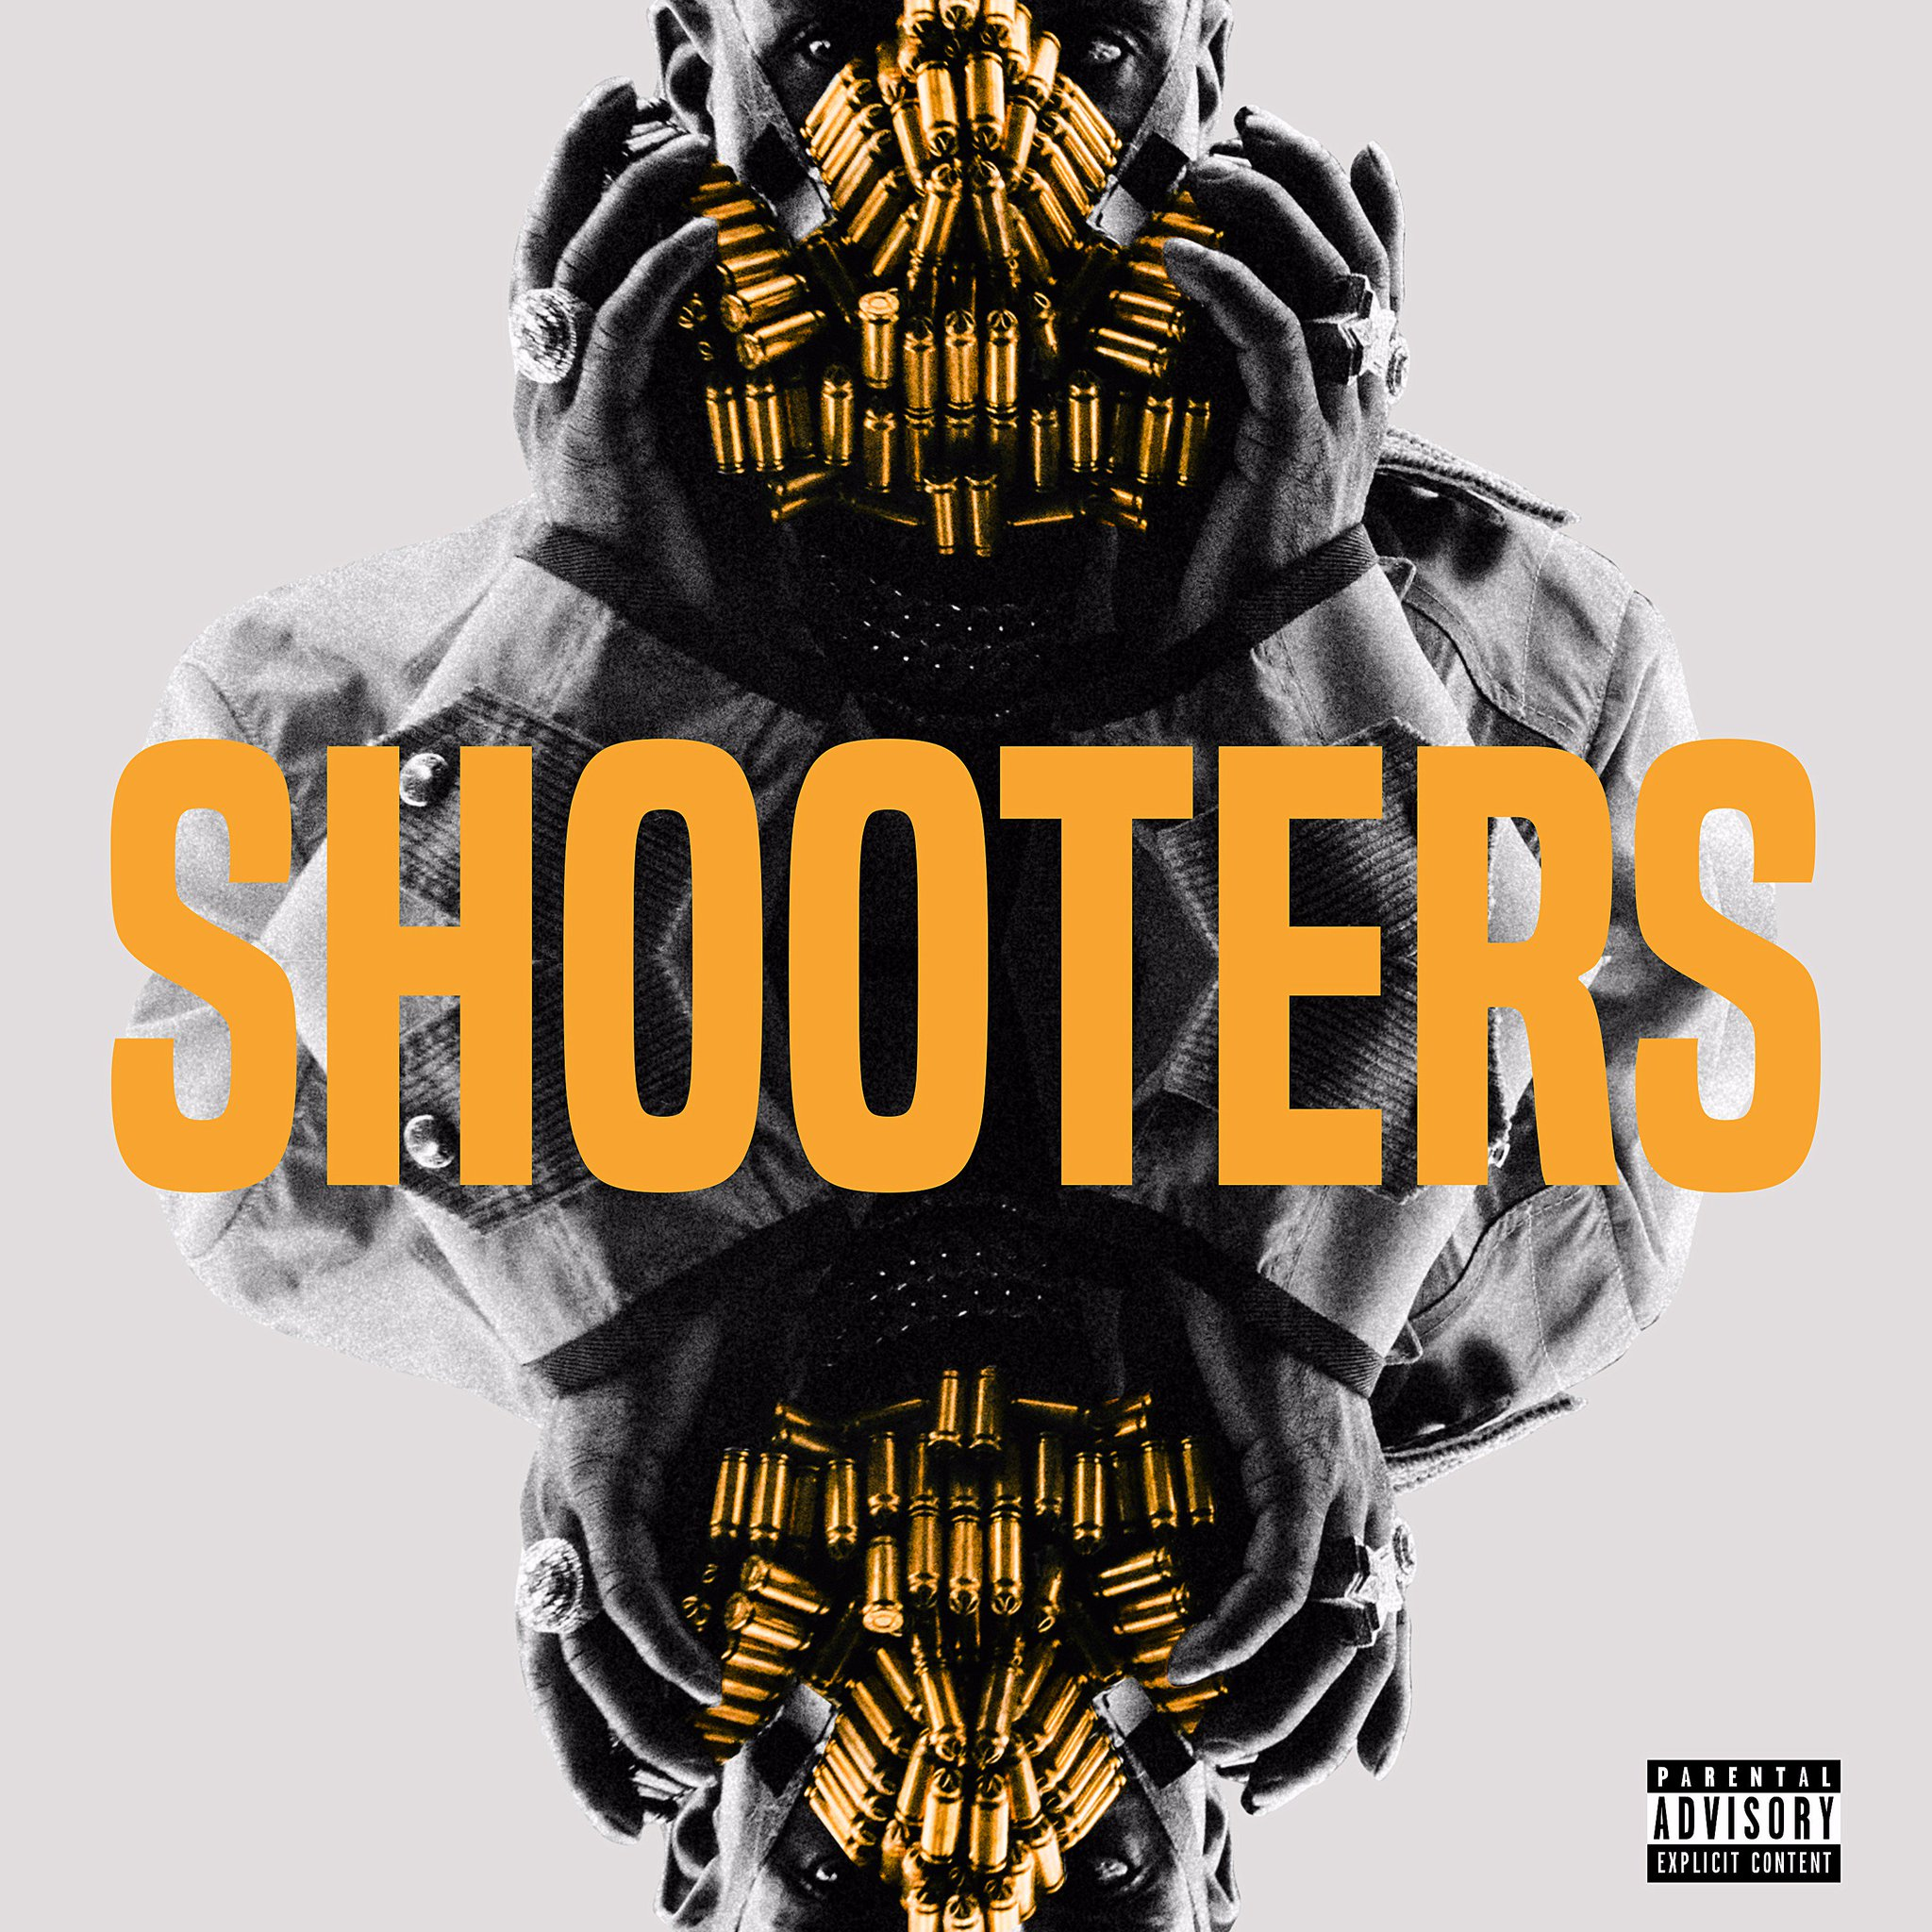 First record is here from my new album ! #Shooters OUT NOW !!! https://t.co/wZSksJ2Hy3 https://t.co/nys7dP7BQy